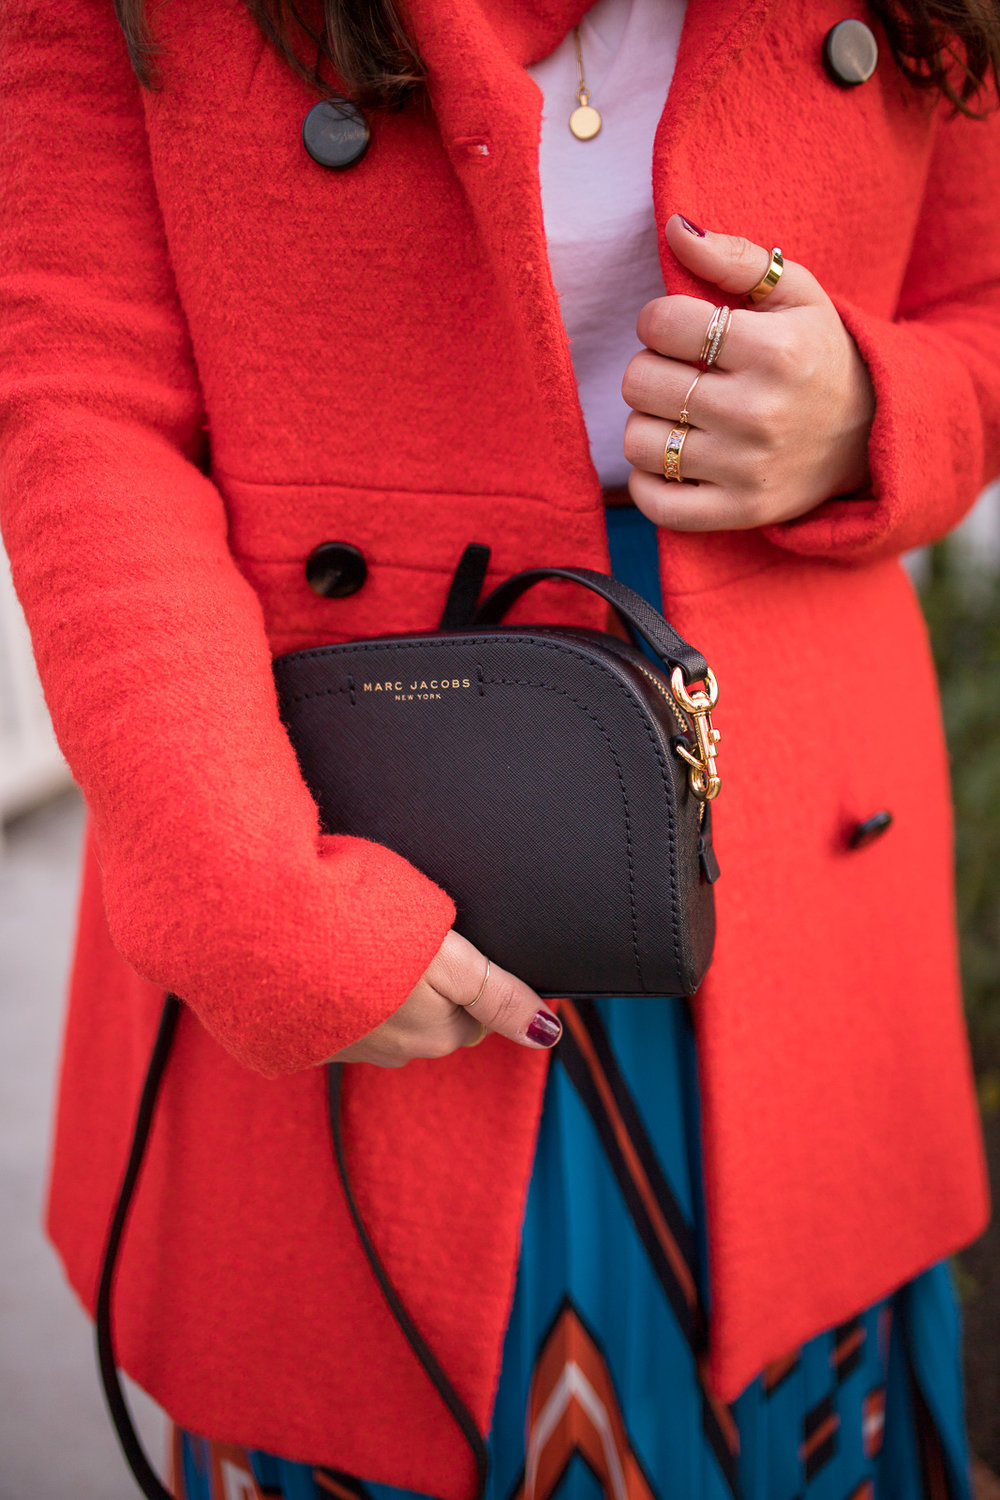 How to Layer rings from madewell argento vivo and henri bendel